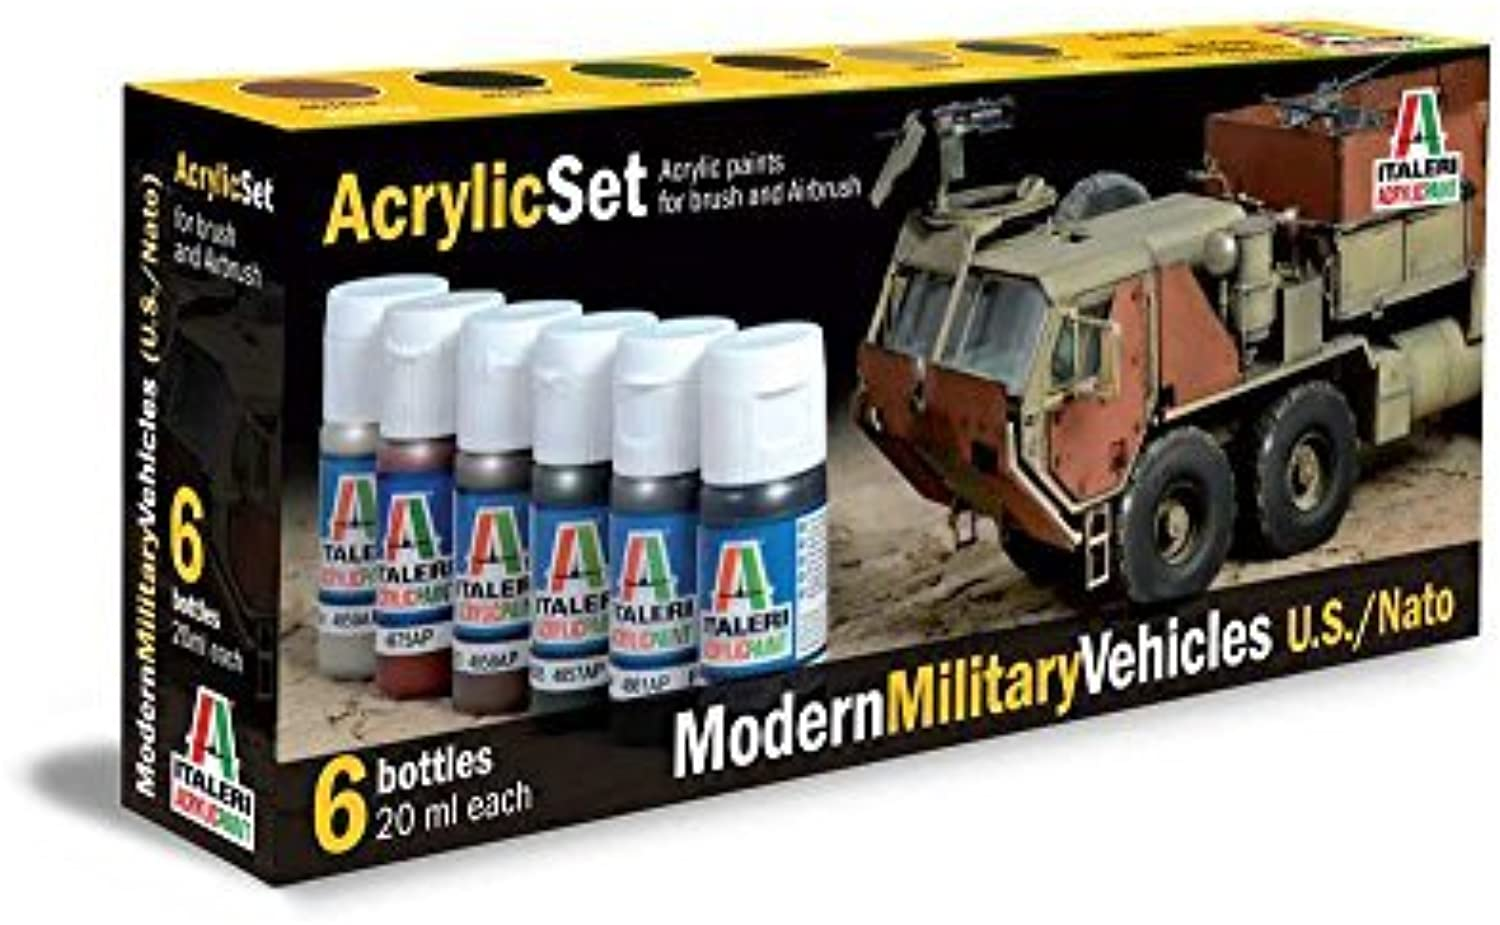 connotación de lujo discreta Italeri Modern Military Vehicles U.S. NATO acrylic paints 6 6 6 bottles per set by Italeri  en promociones de estadios